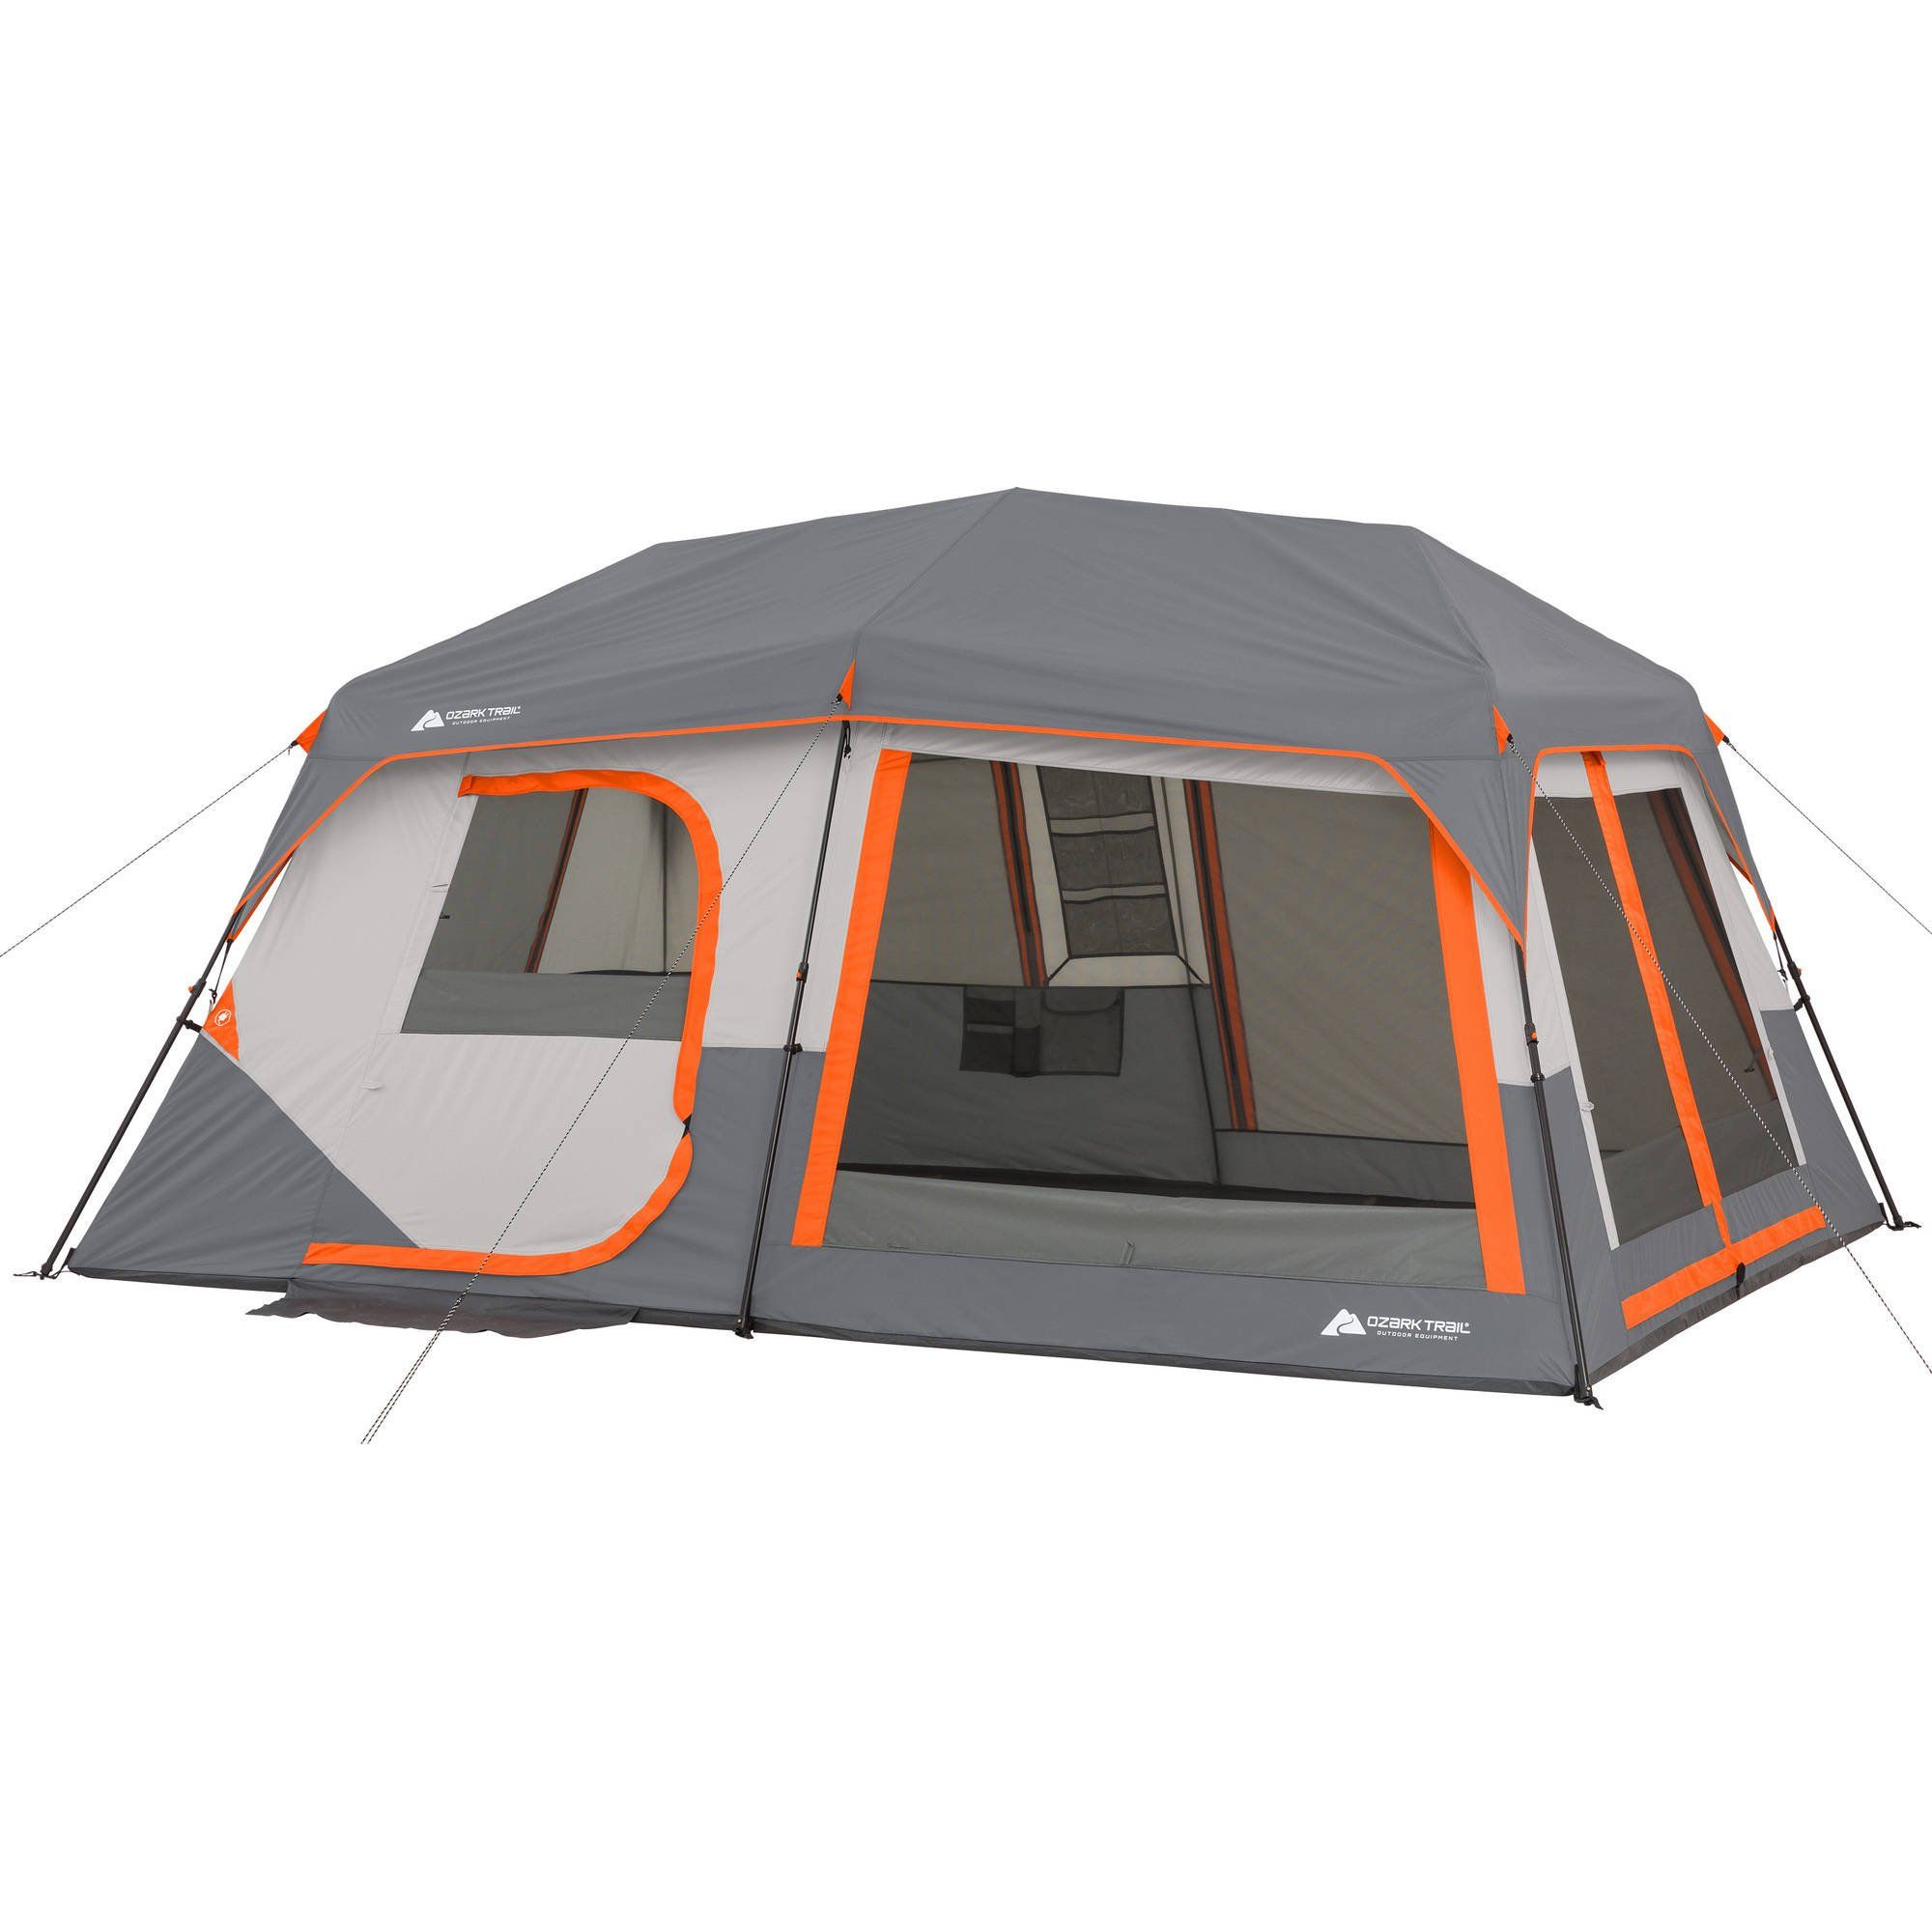 Ozark Trail 10 Person Cabin Tents Walmart Com Best Tents For Camping Family Tent Camping Cabin Camping